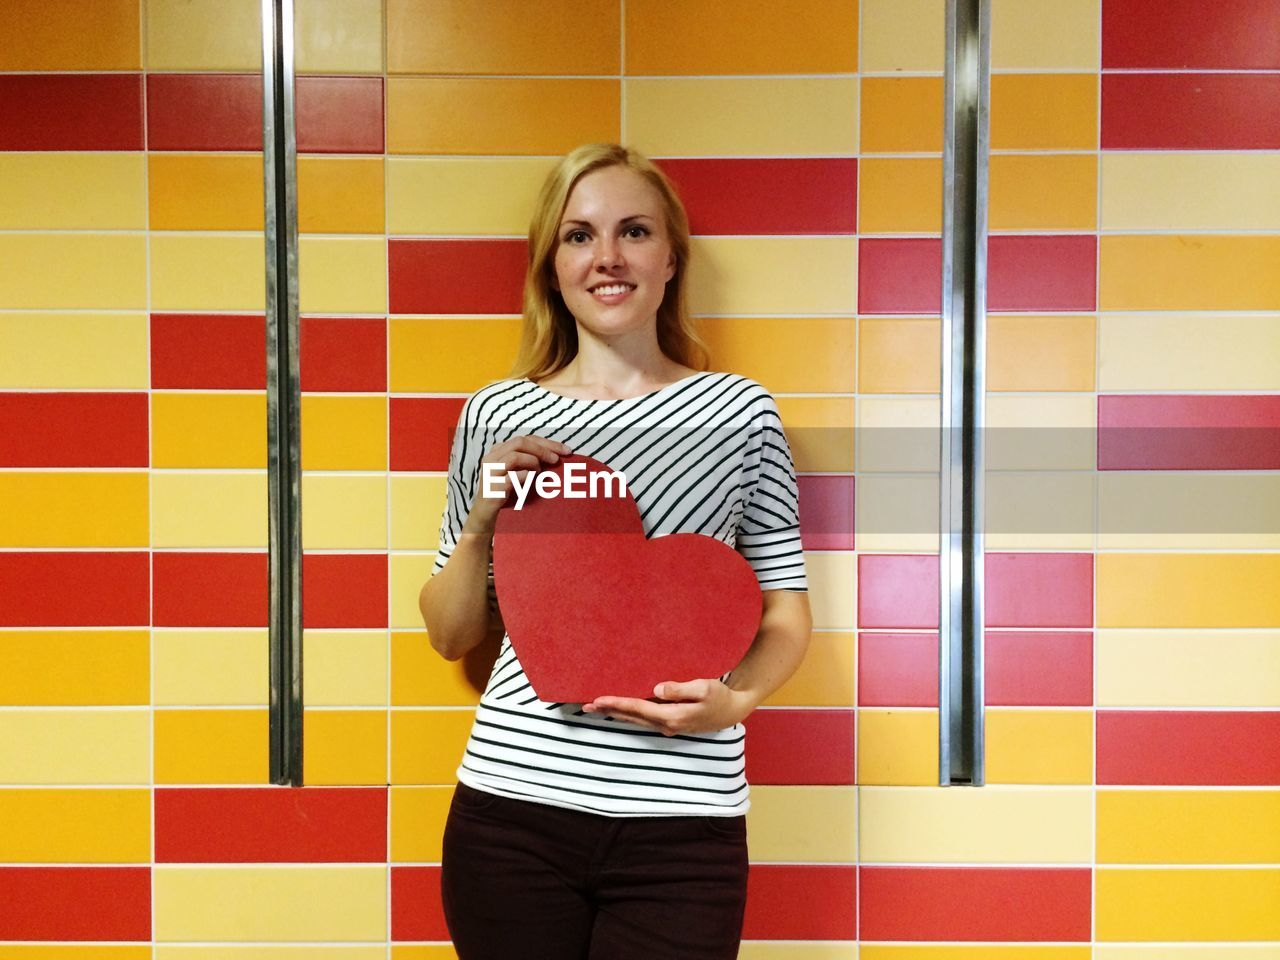 Portrait of smiling young woman holding red heart shape while standing against wall